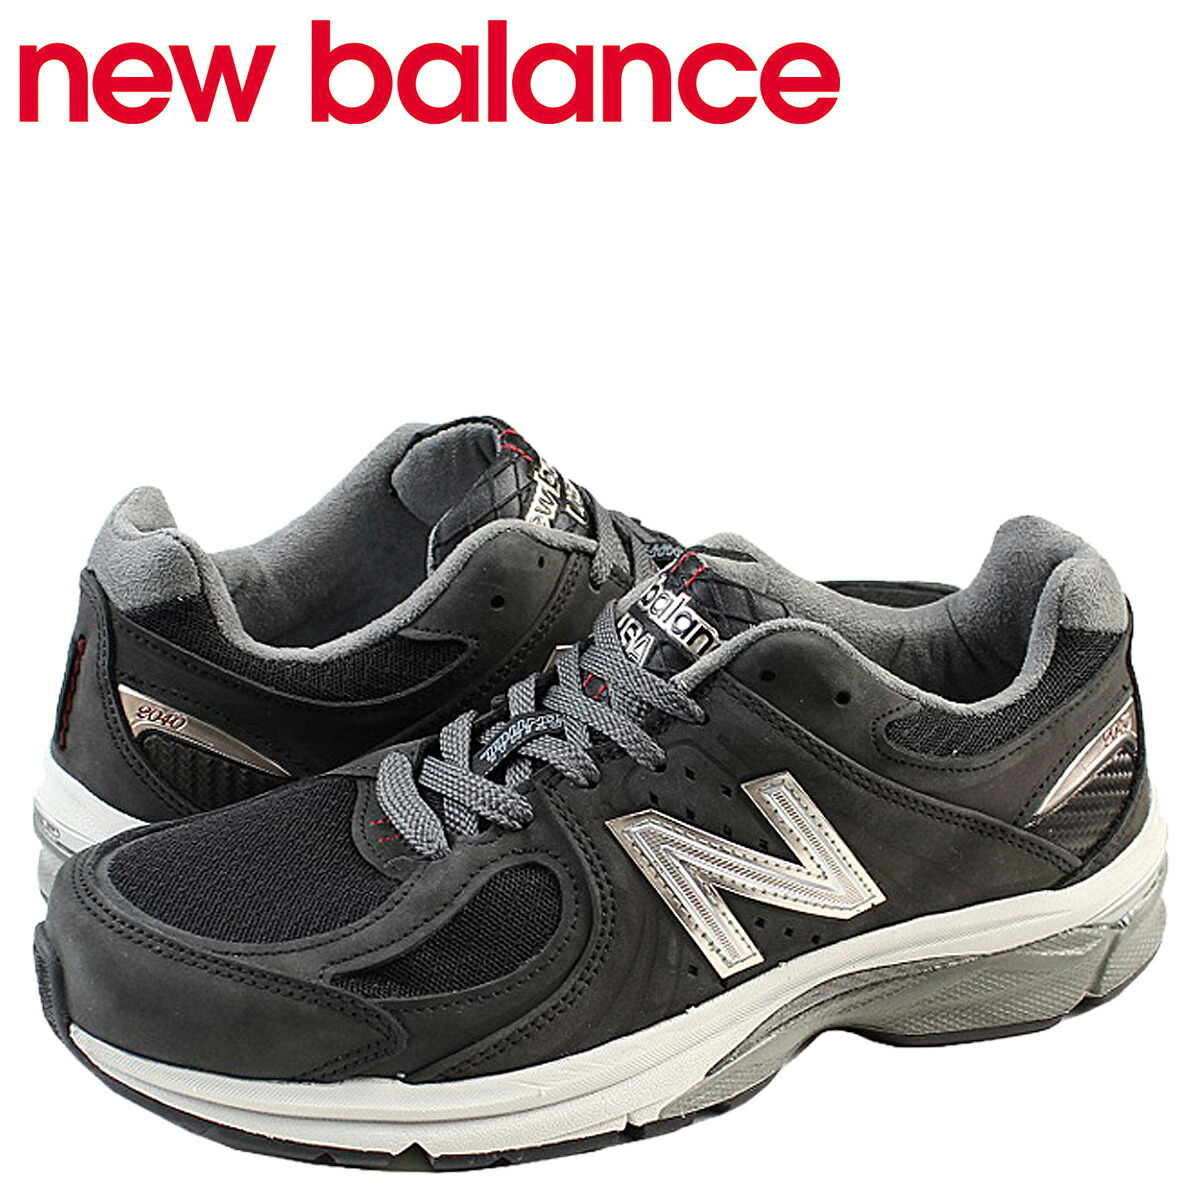 Use New Balance promo codes to save on fitness gear, including sneakers for men, women, and children. New Balance has clearance sales for up to 40% off their activewear. You can also find New Balance discount codes for money off a minimum purchase or percentage discounts.